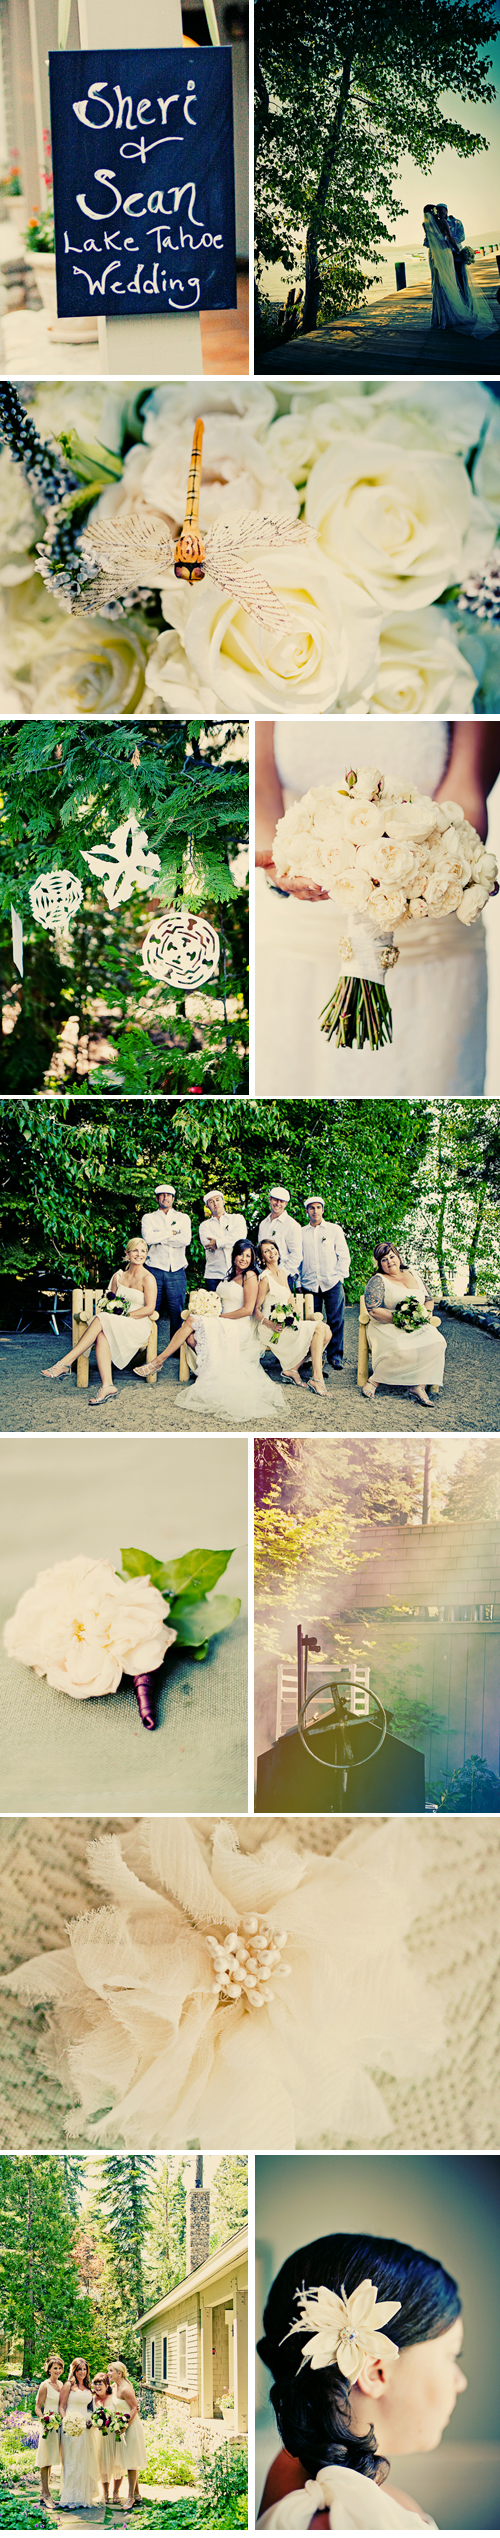 Wedding Blog Real Wedding: Lake Tahoe